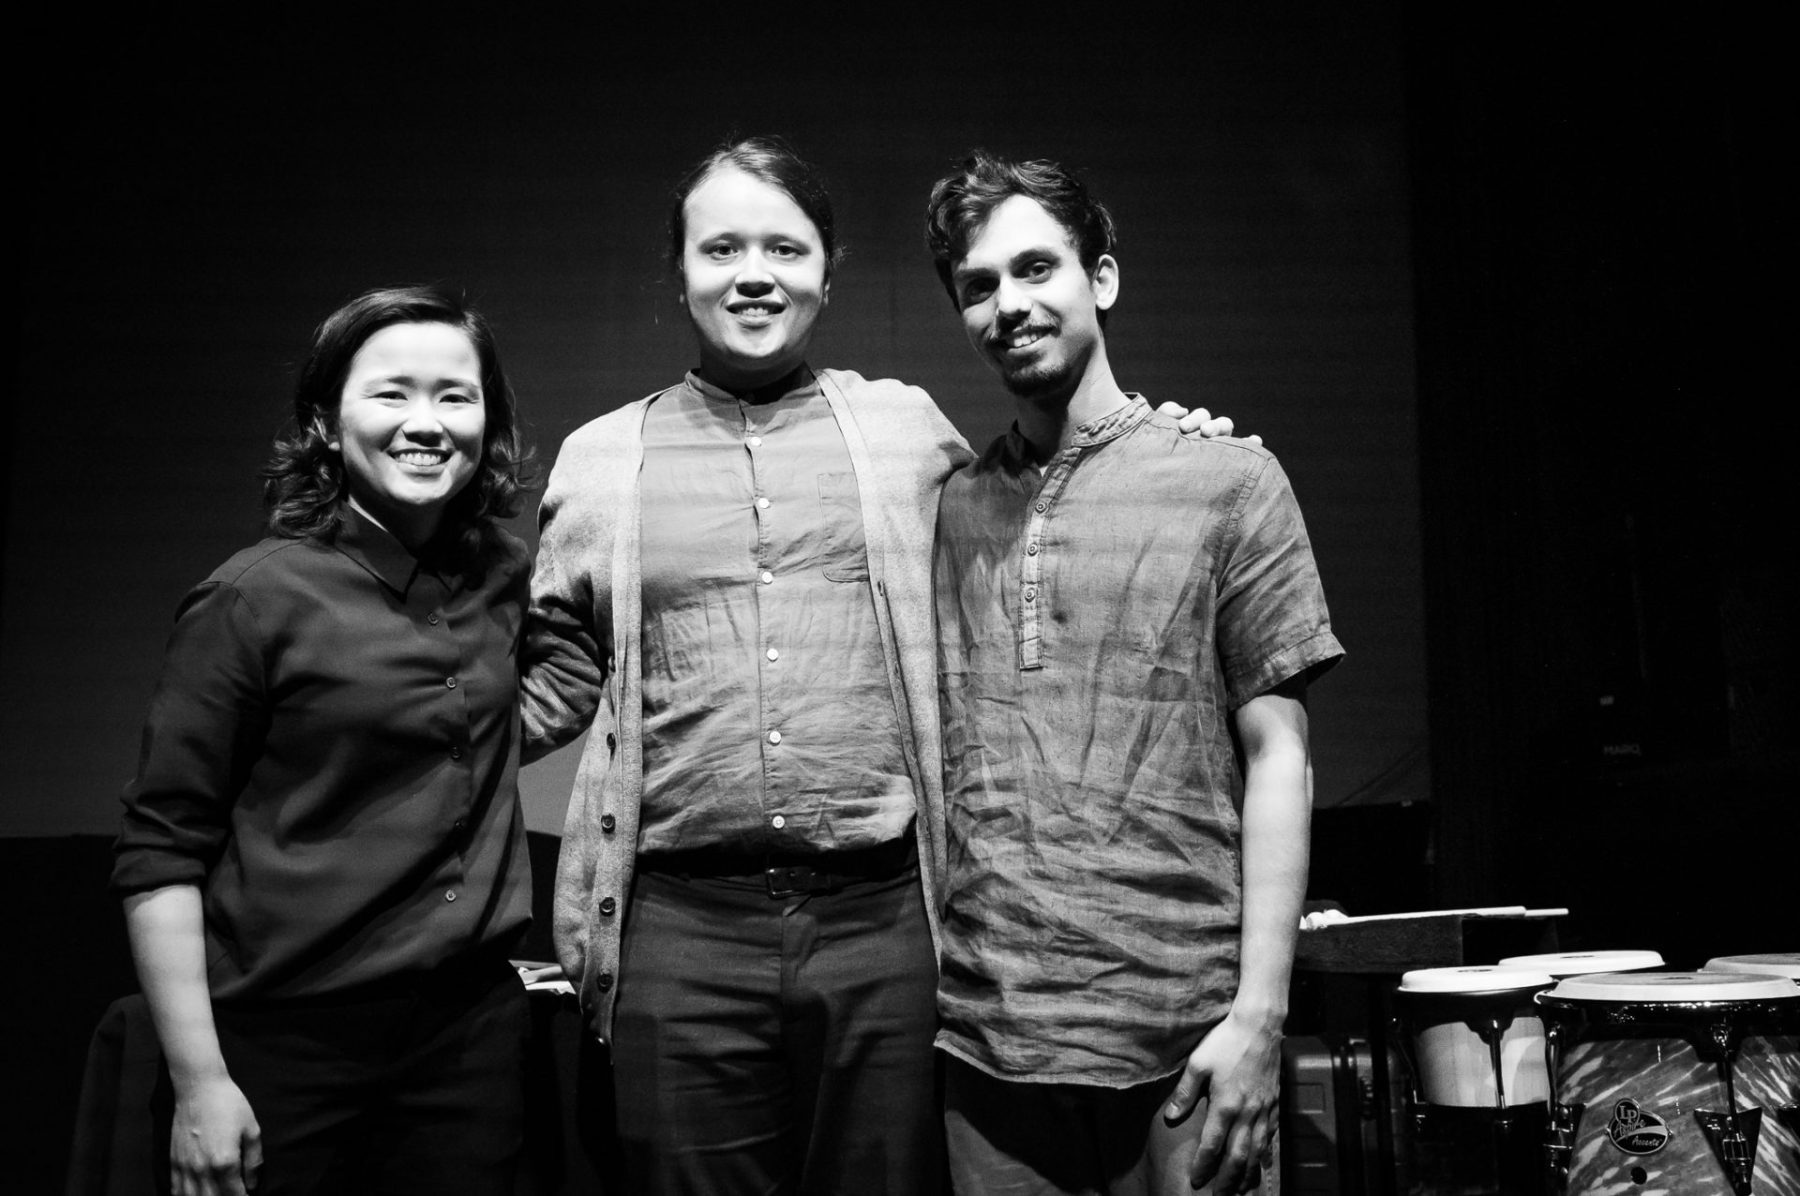 Julia Chien, Alex Mah & Matthew Ariaratnam, Emerge on Main, AMOT 2019